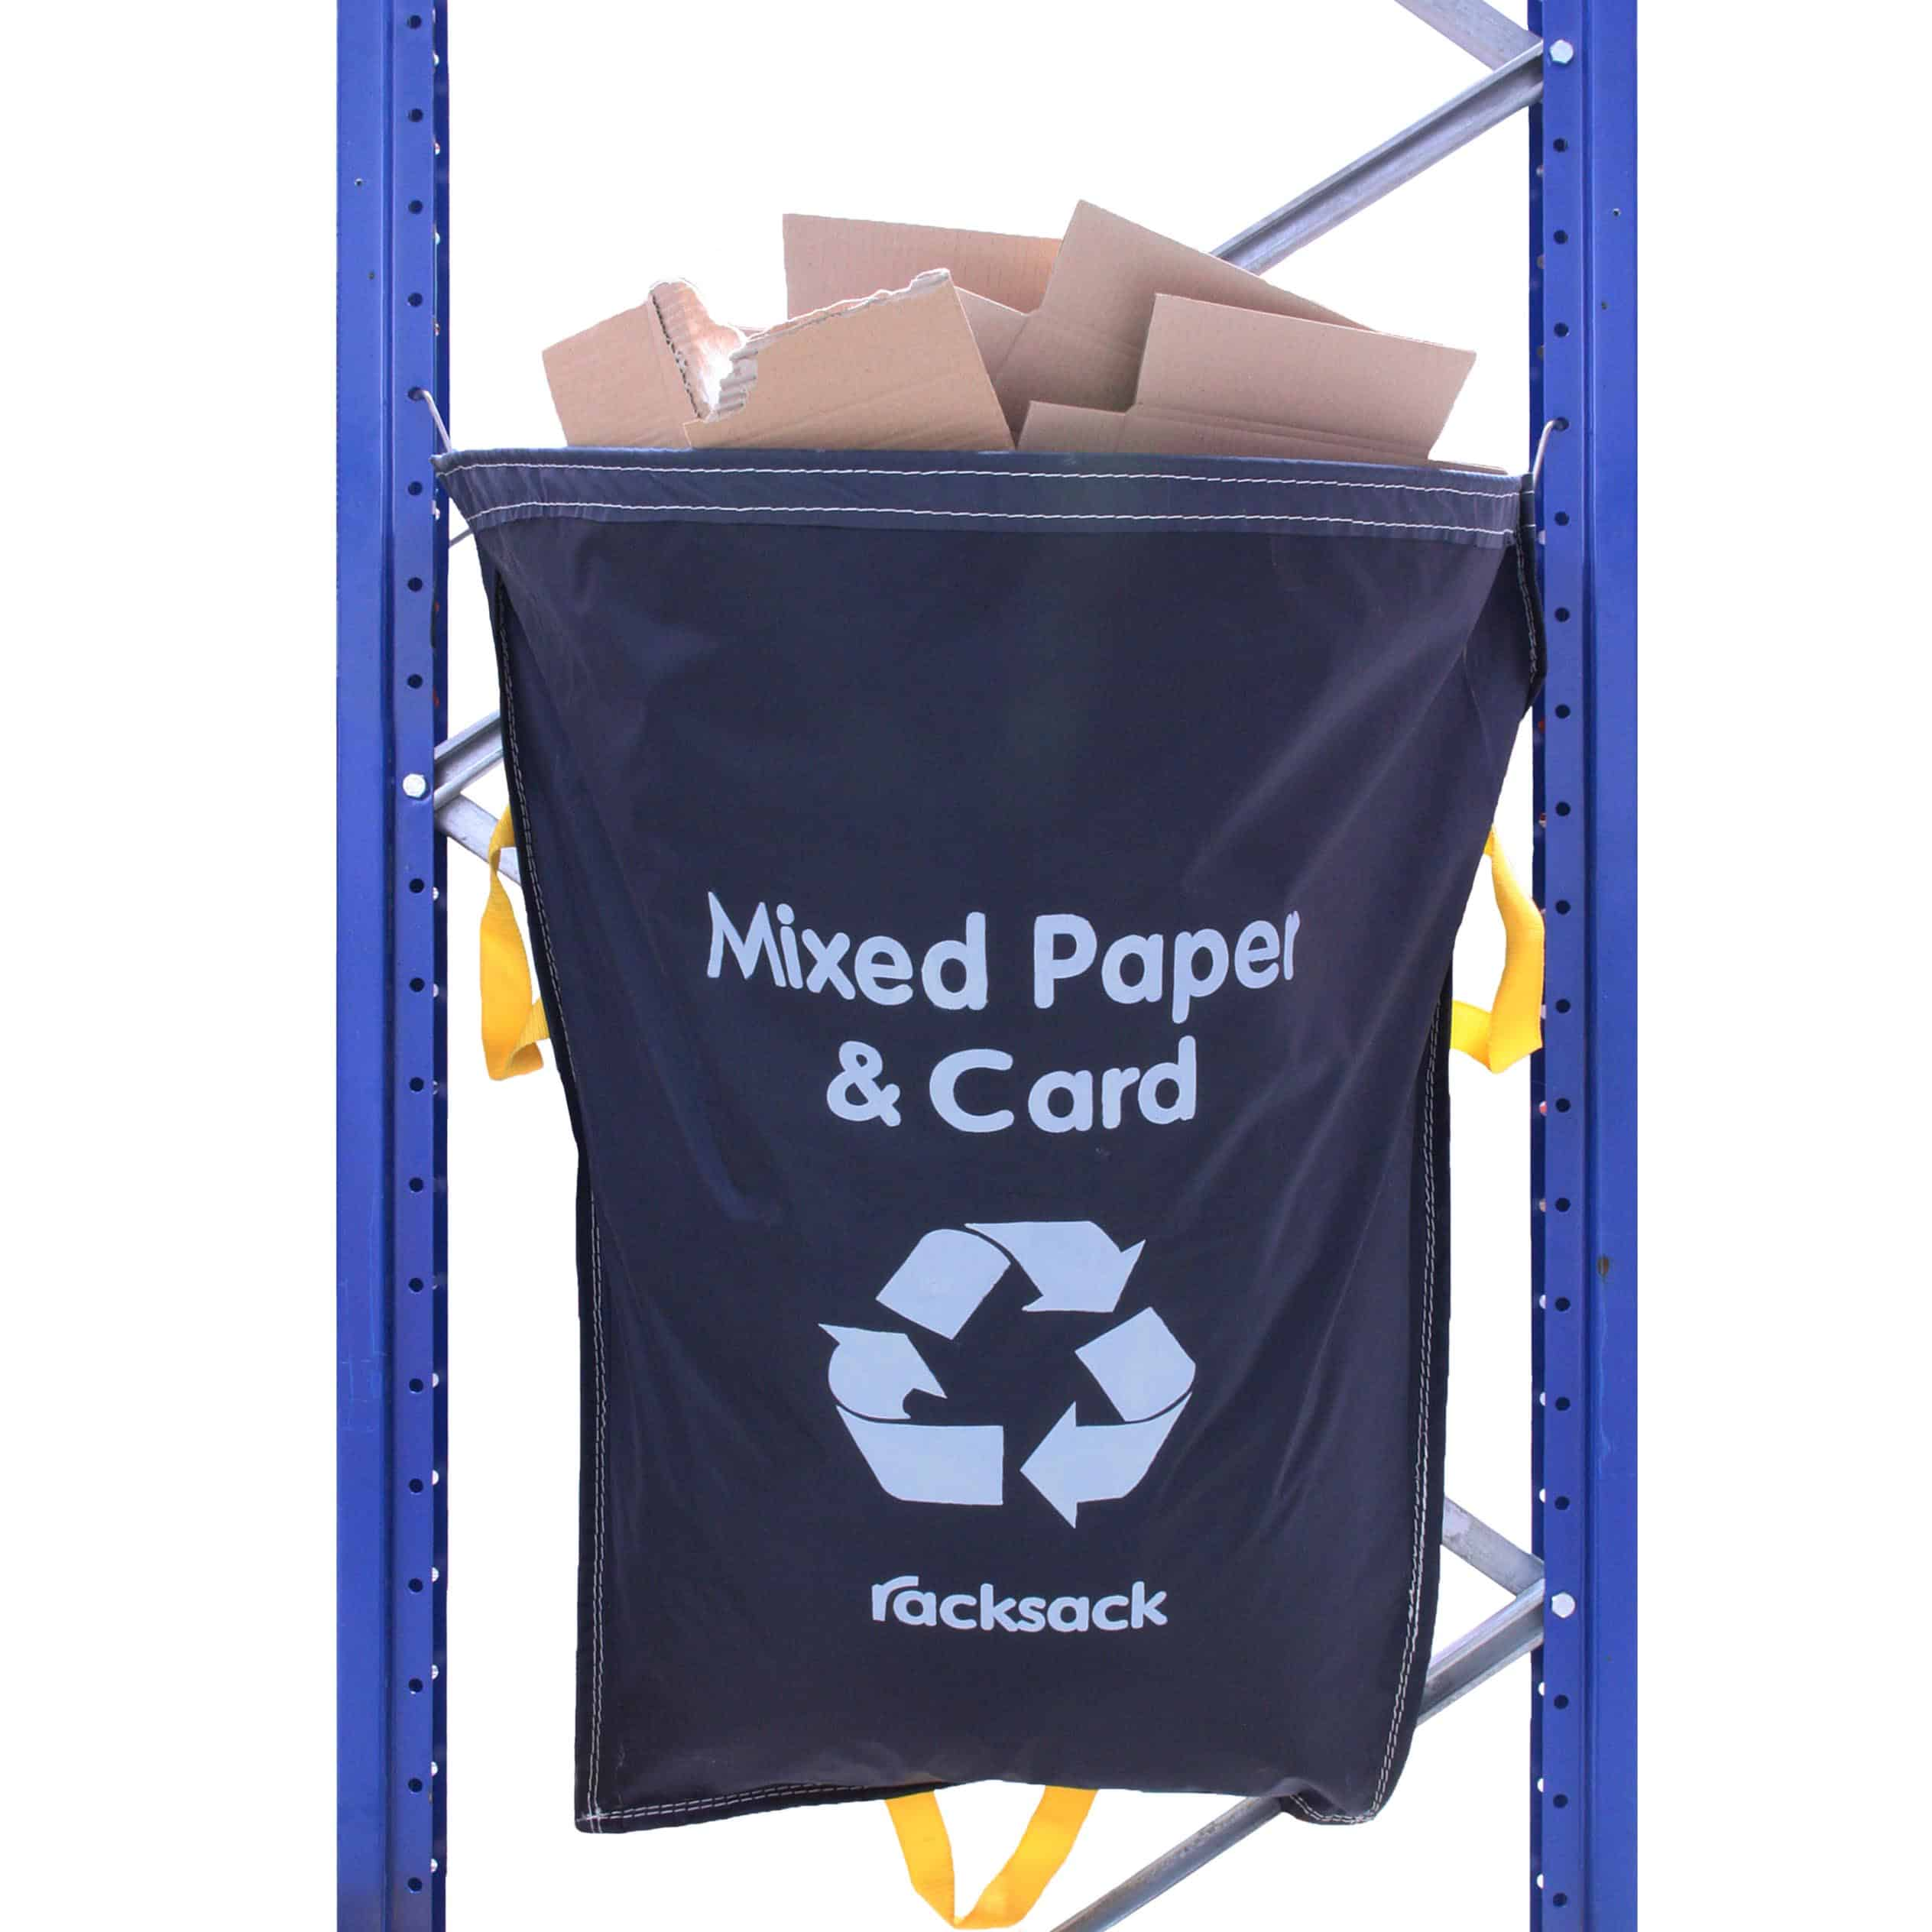 Racksack Waste Management Recycling Bags